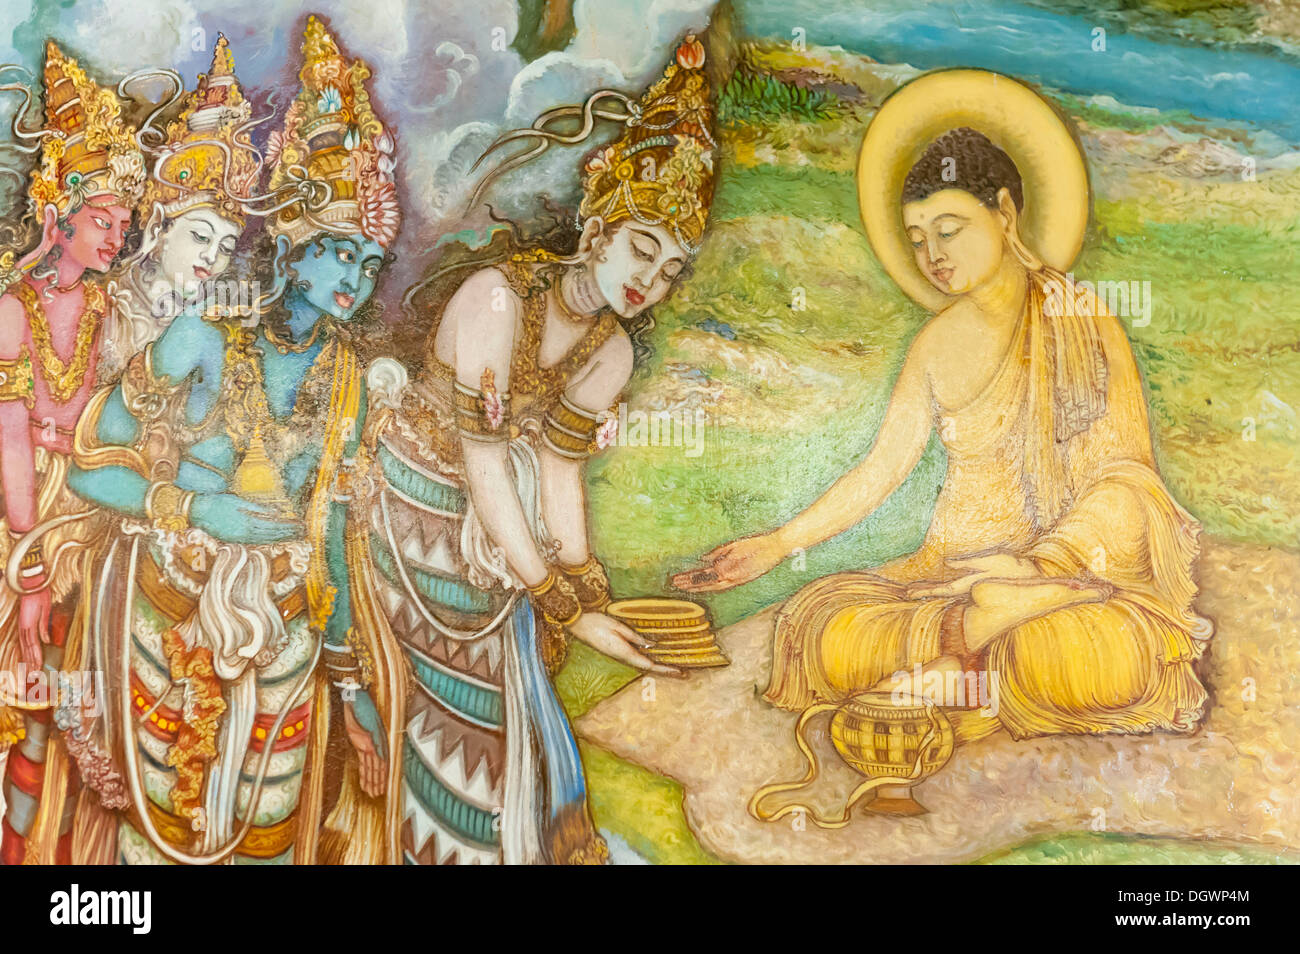 Mural painting, illustration of Buddha and worshippers, Buddhist Mahiyangana Temple, Mahiyangana, Sri Lanka - Stock Image